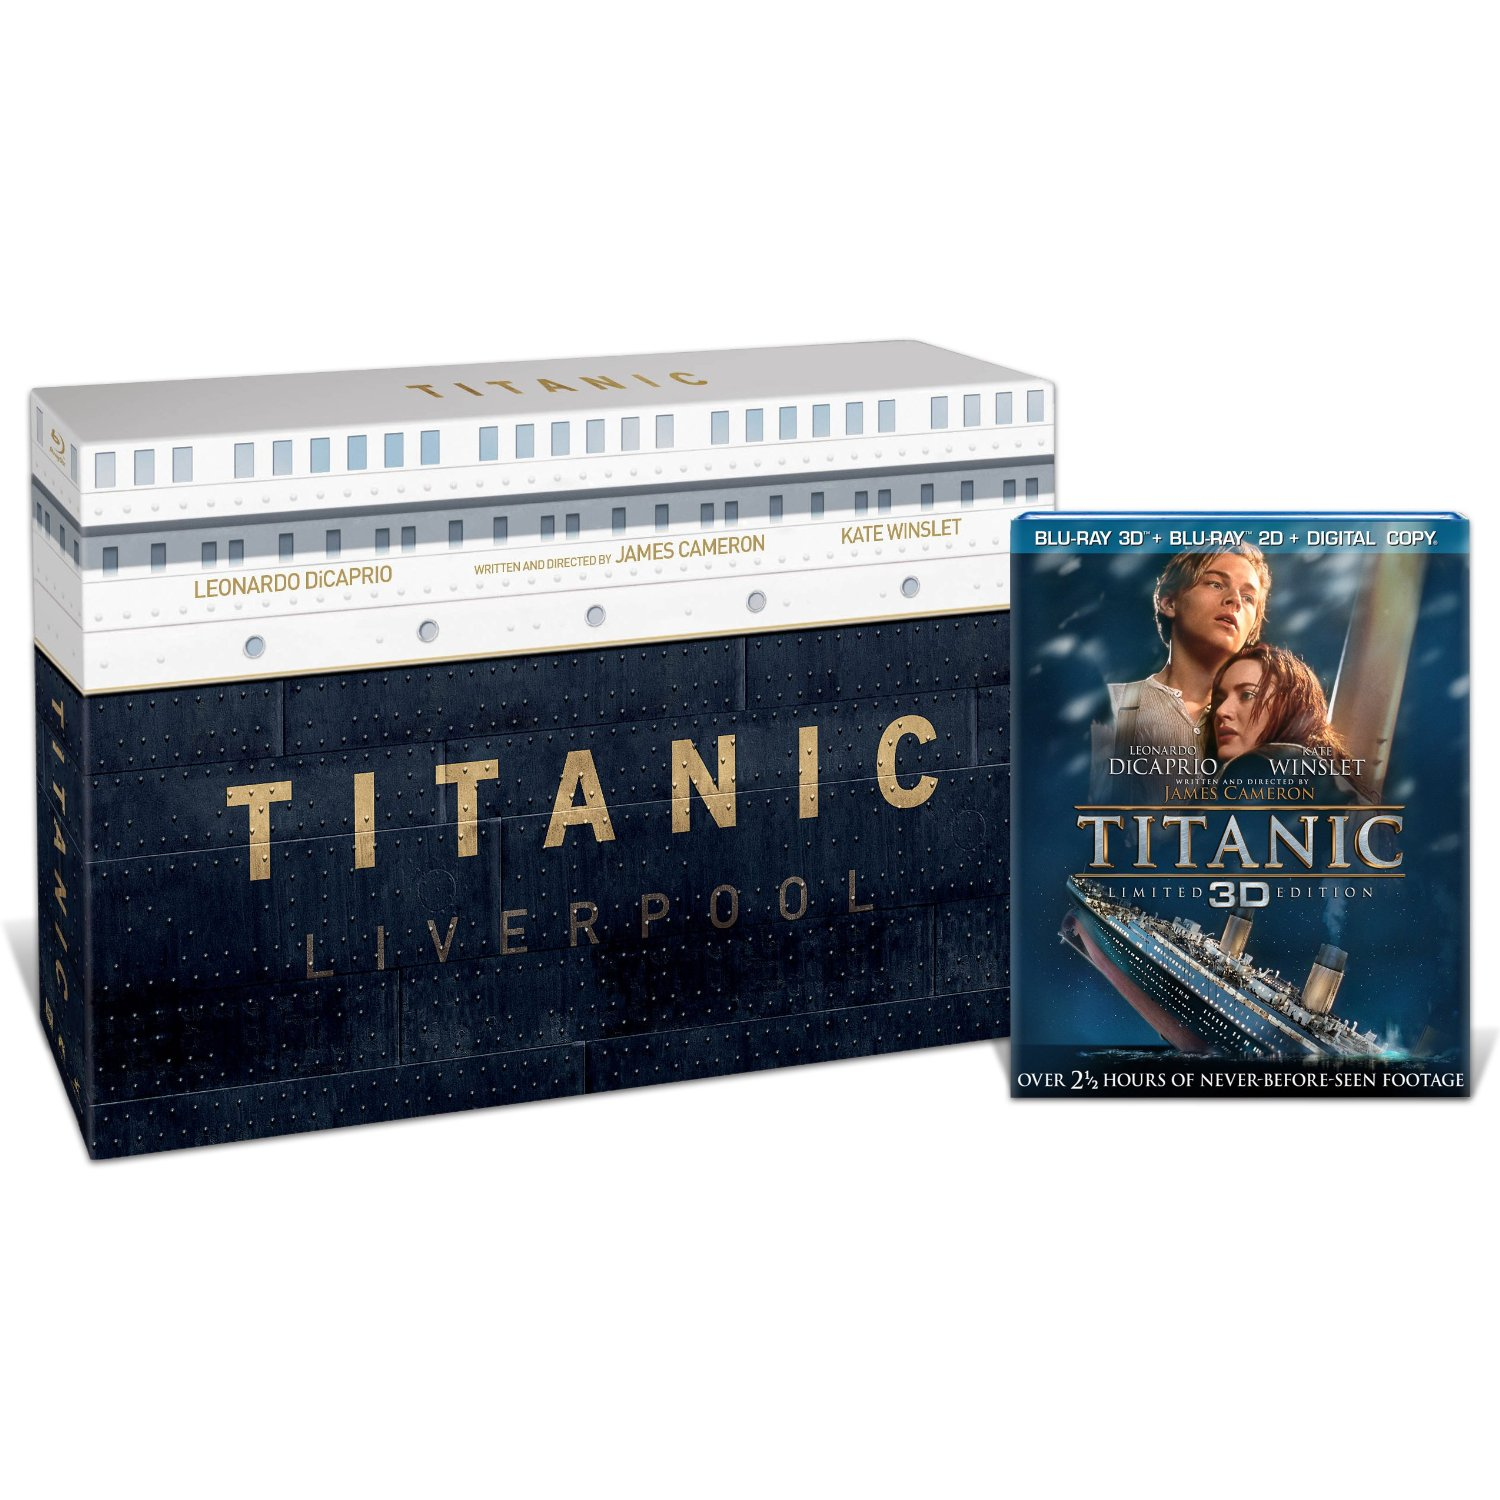 14157d11a Pre-order link: The US Titanic Collector's Edition (Blu-ray 3D / Blu-ray /  Digital Copy)